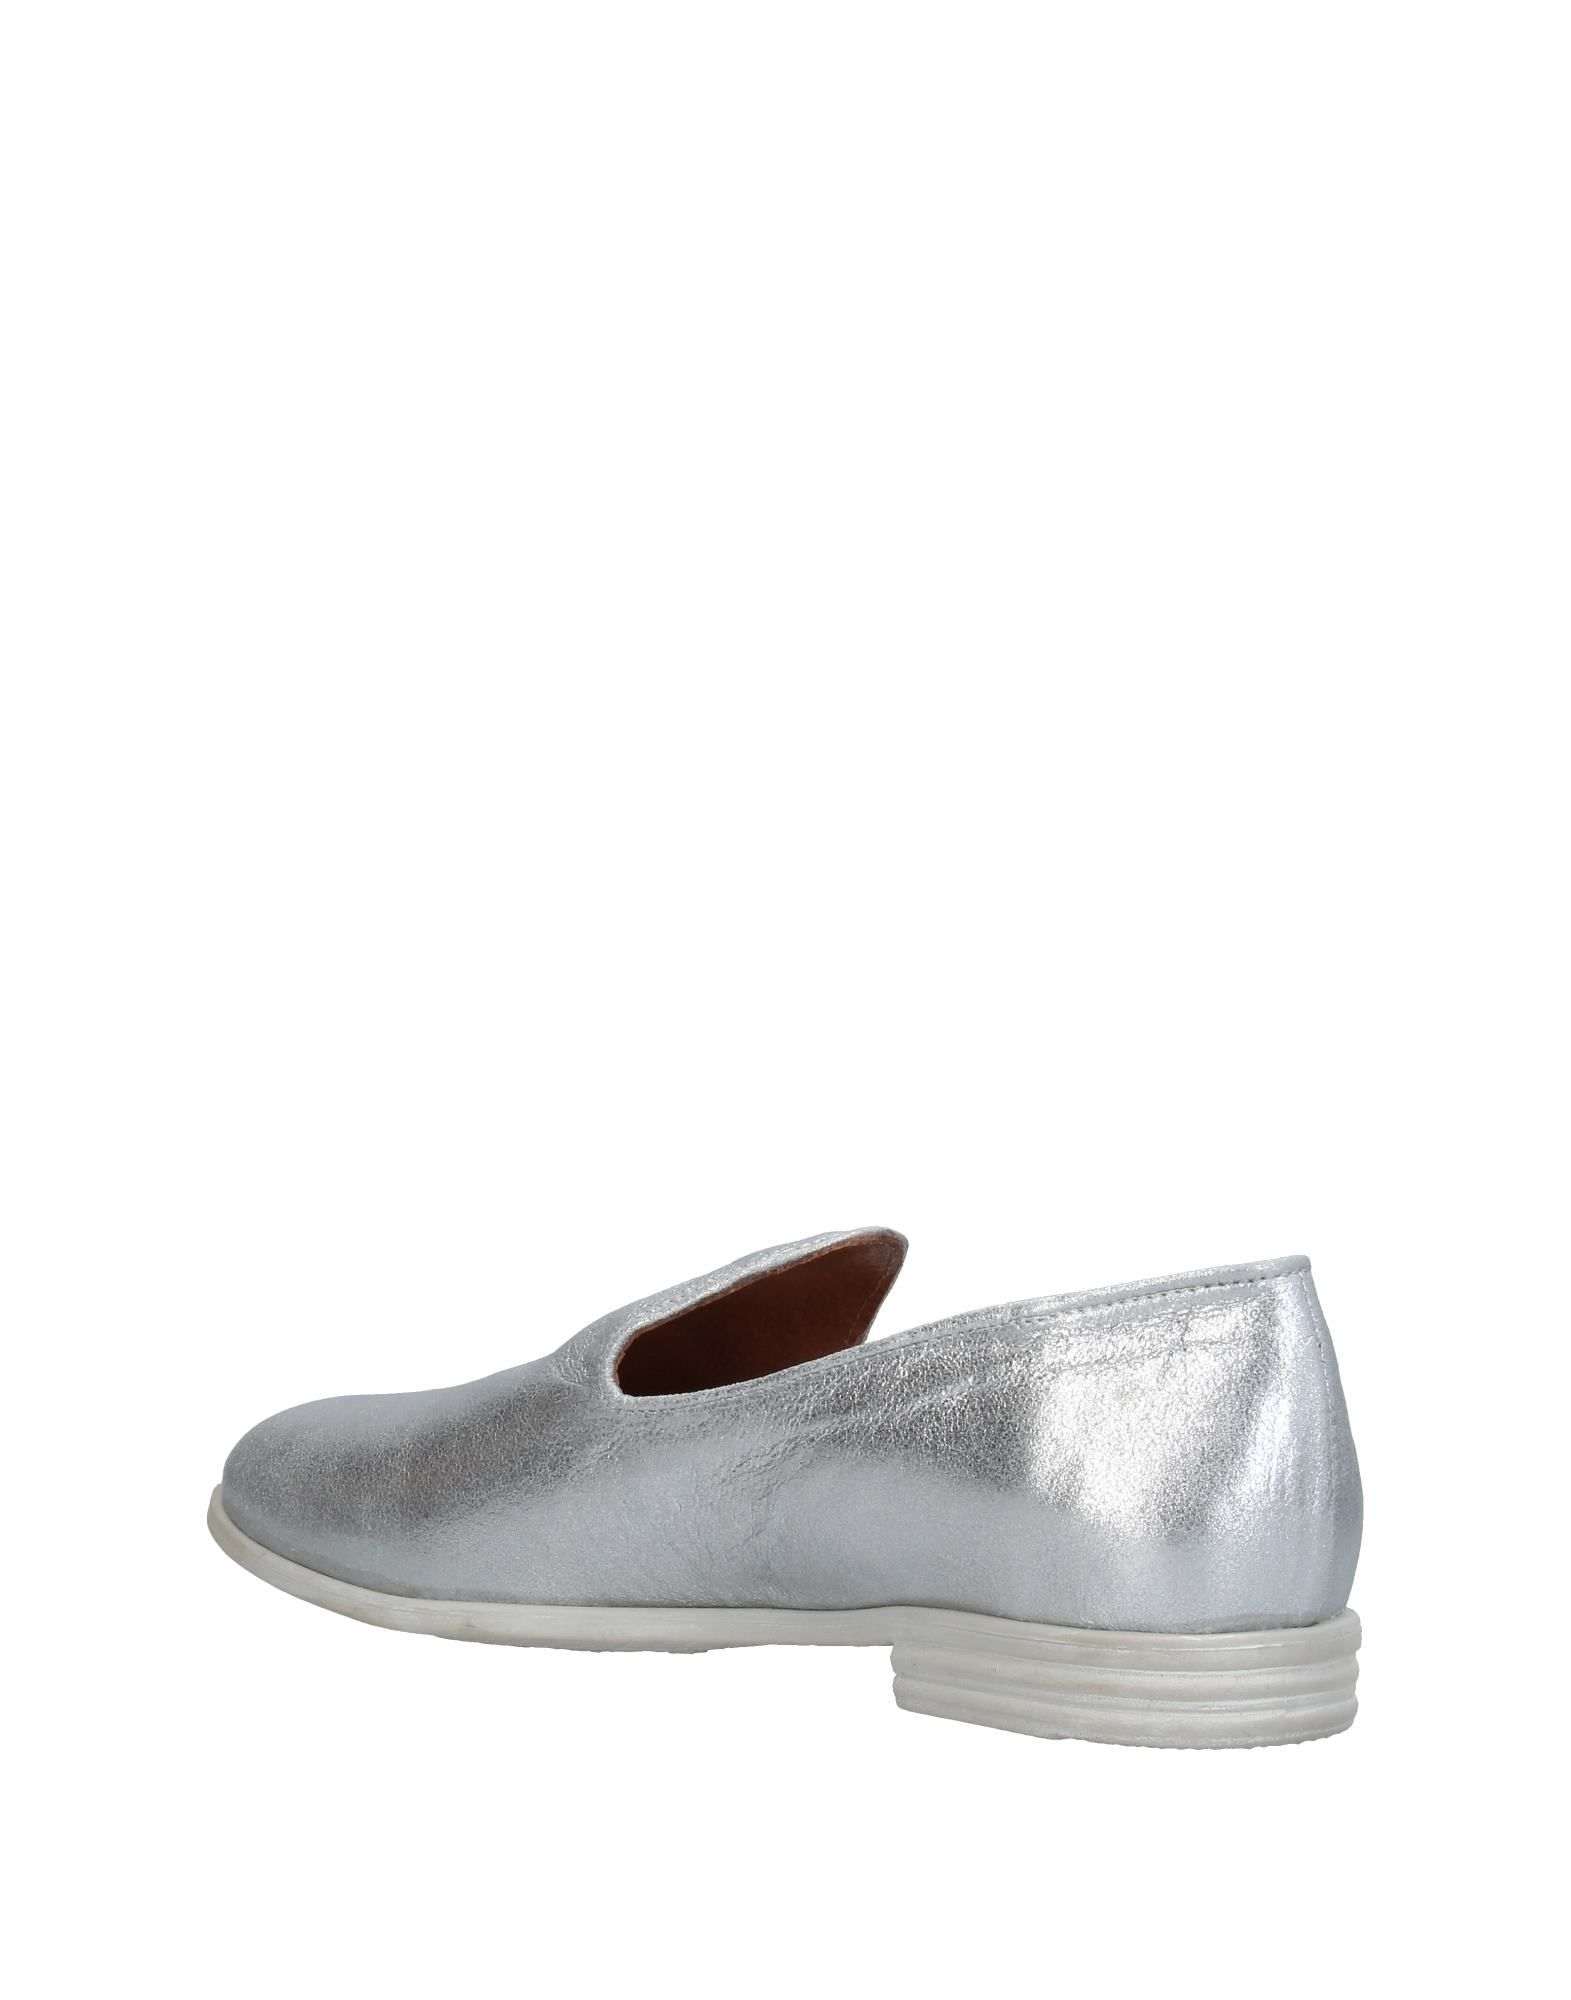 Mocassino Divine Follie Donna - 11376019BX 11376019BX - dff403